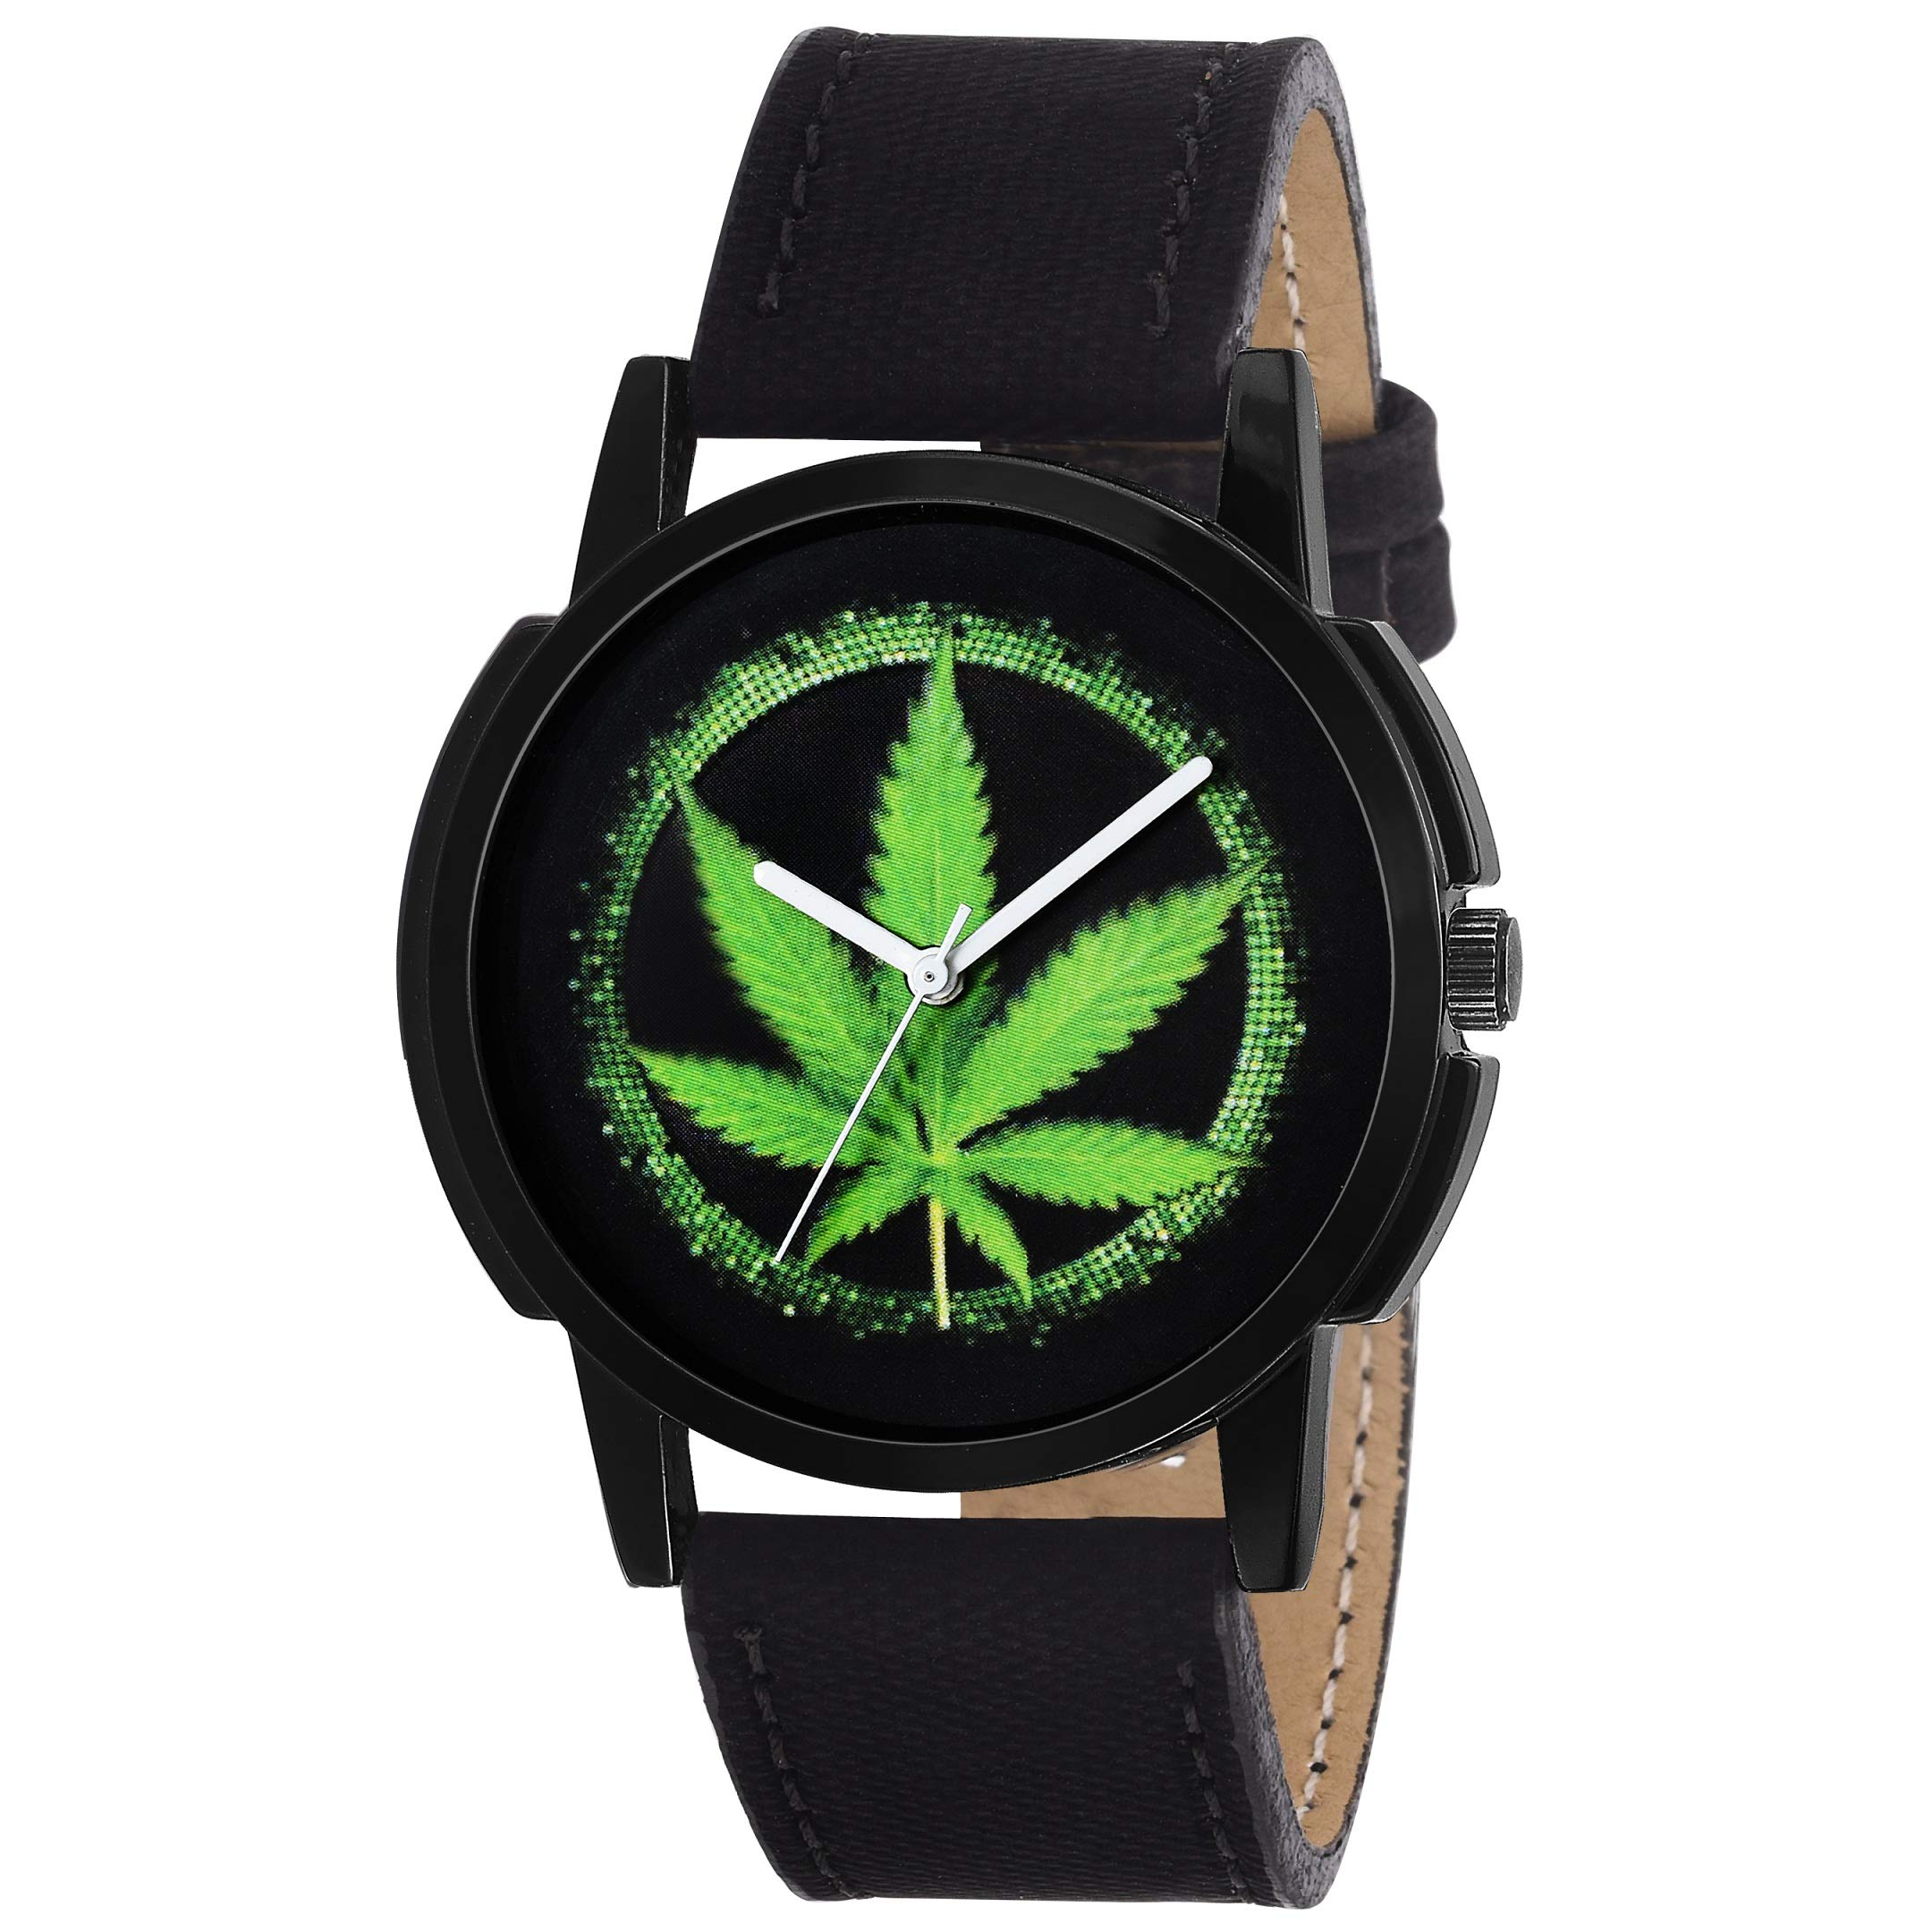 Amazon Price History for Timebre Men & Women Weed Love Analogue Black Dial Watch